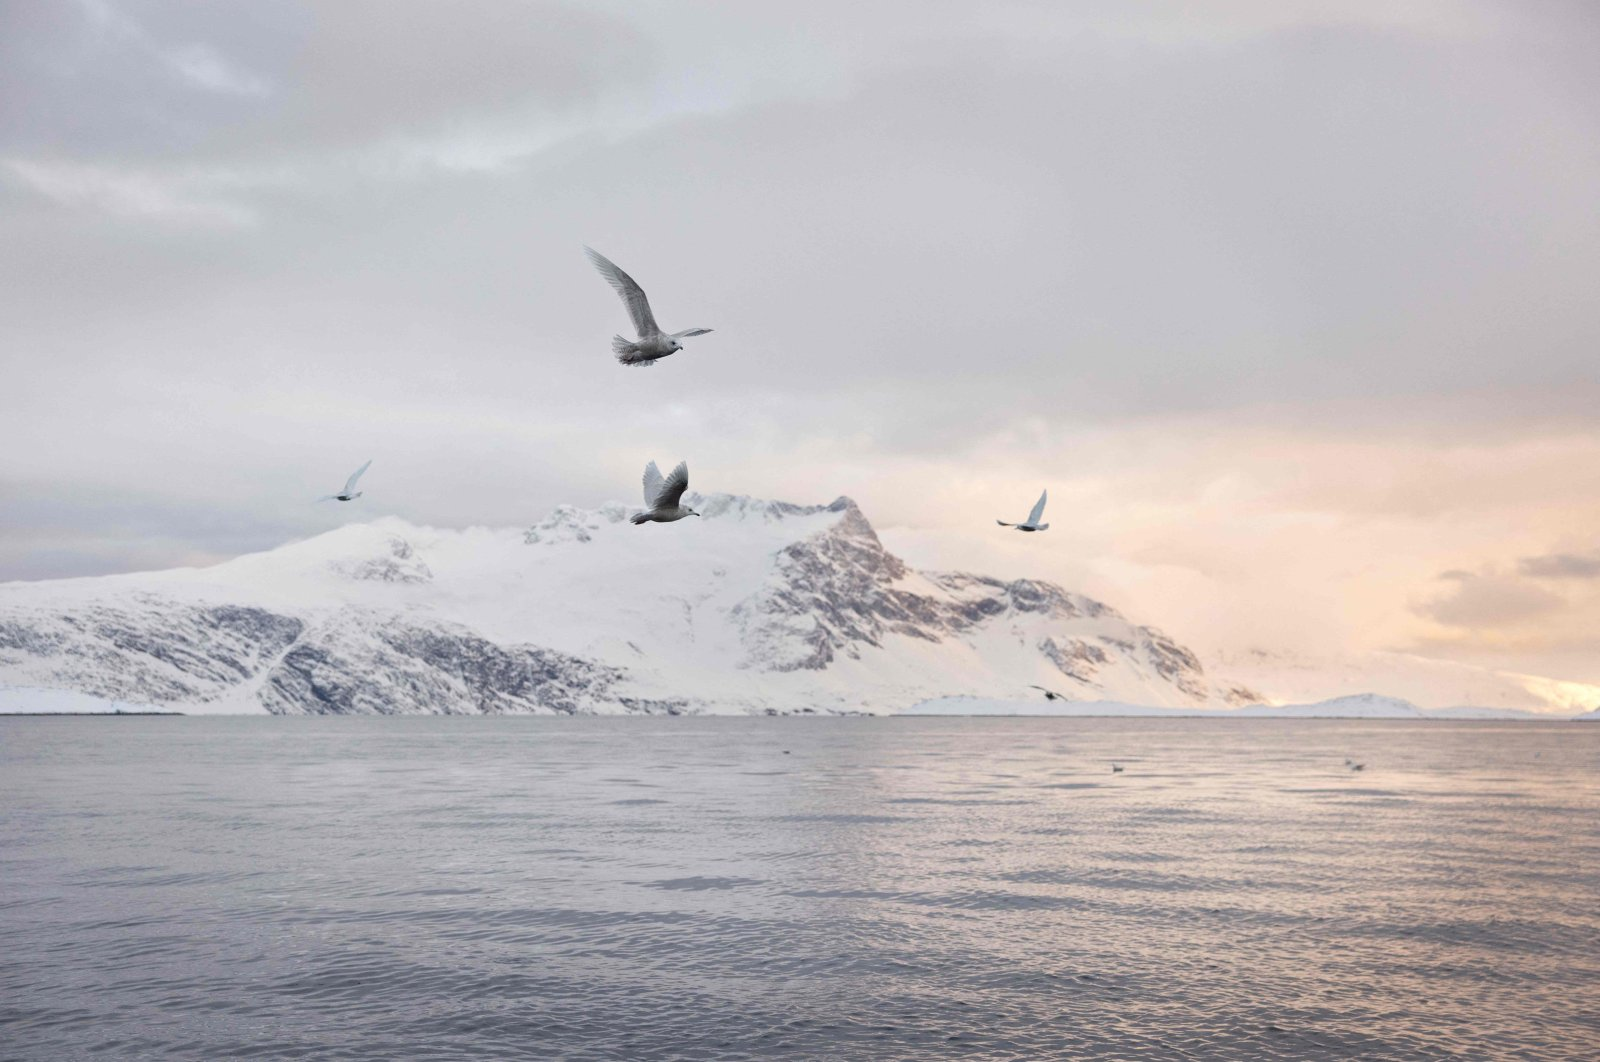 Seagulls fly near the boat of independent fisherman Lars Heilmann fishing for halibut in the Nuuk Fjord, near Nuuk, Greenland, March 20, 2021.  (AFP Photo)